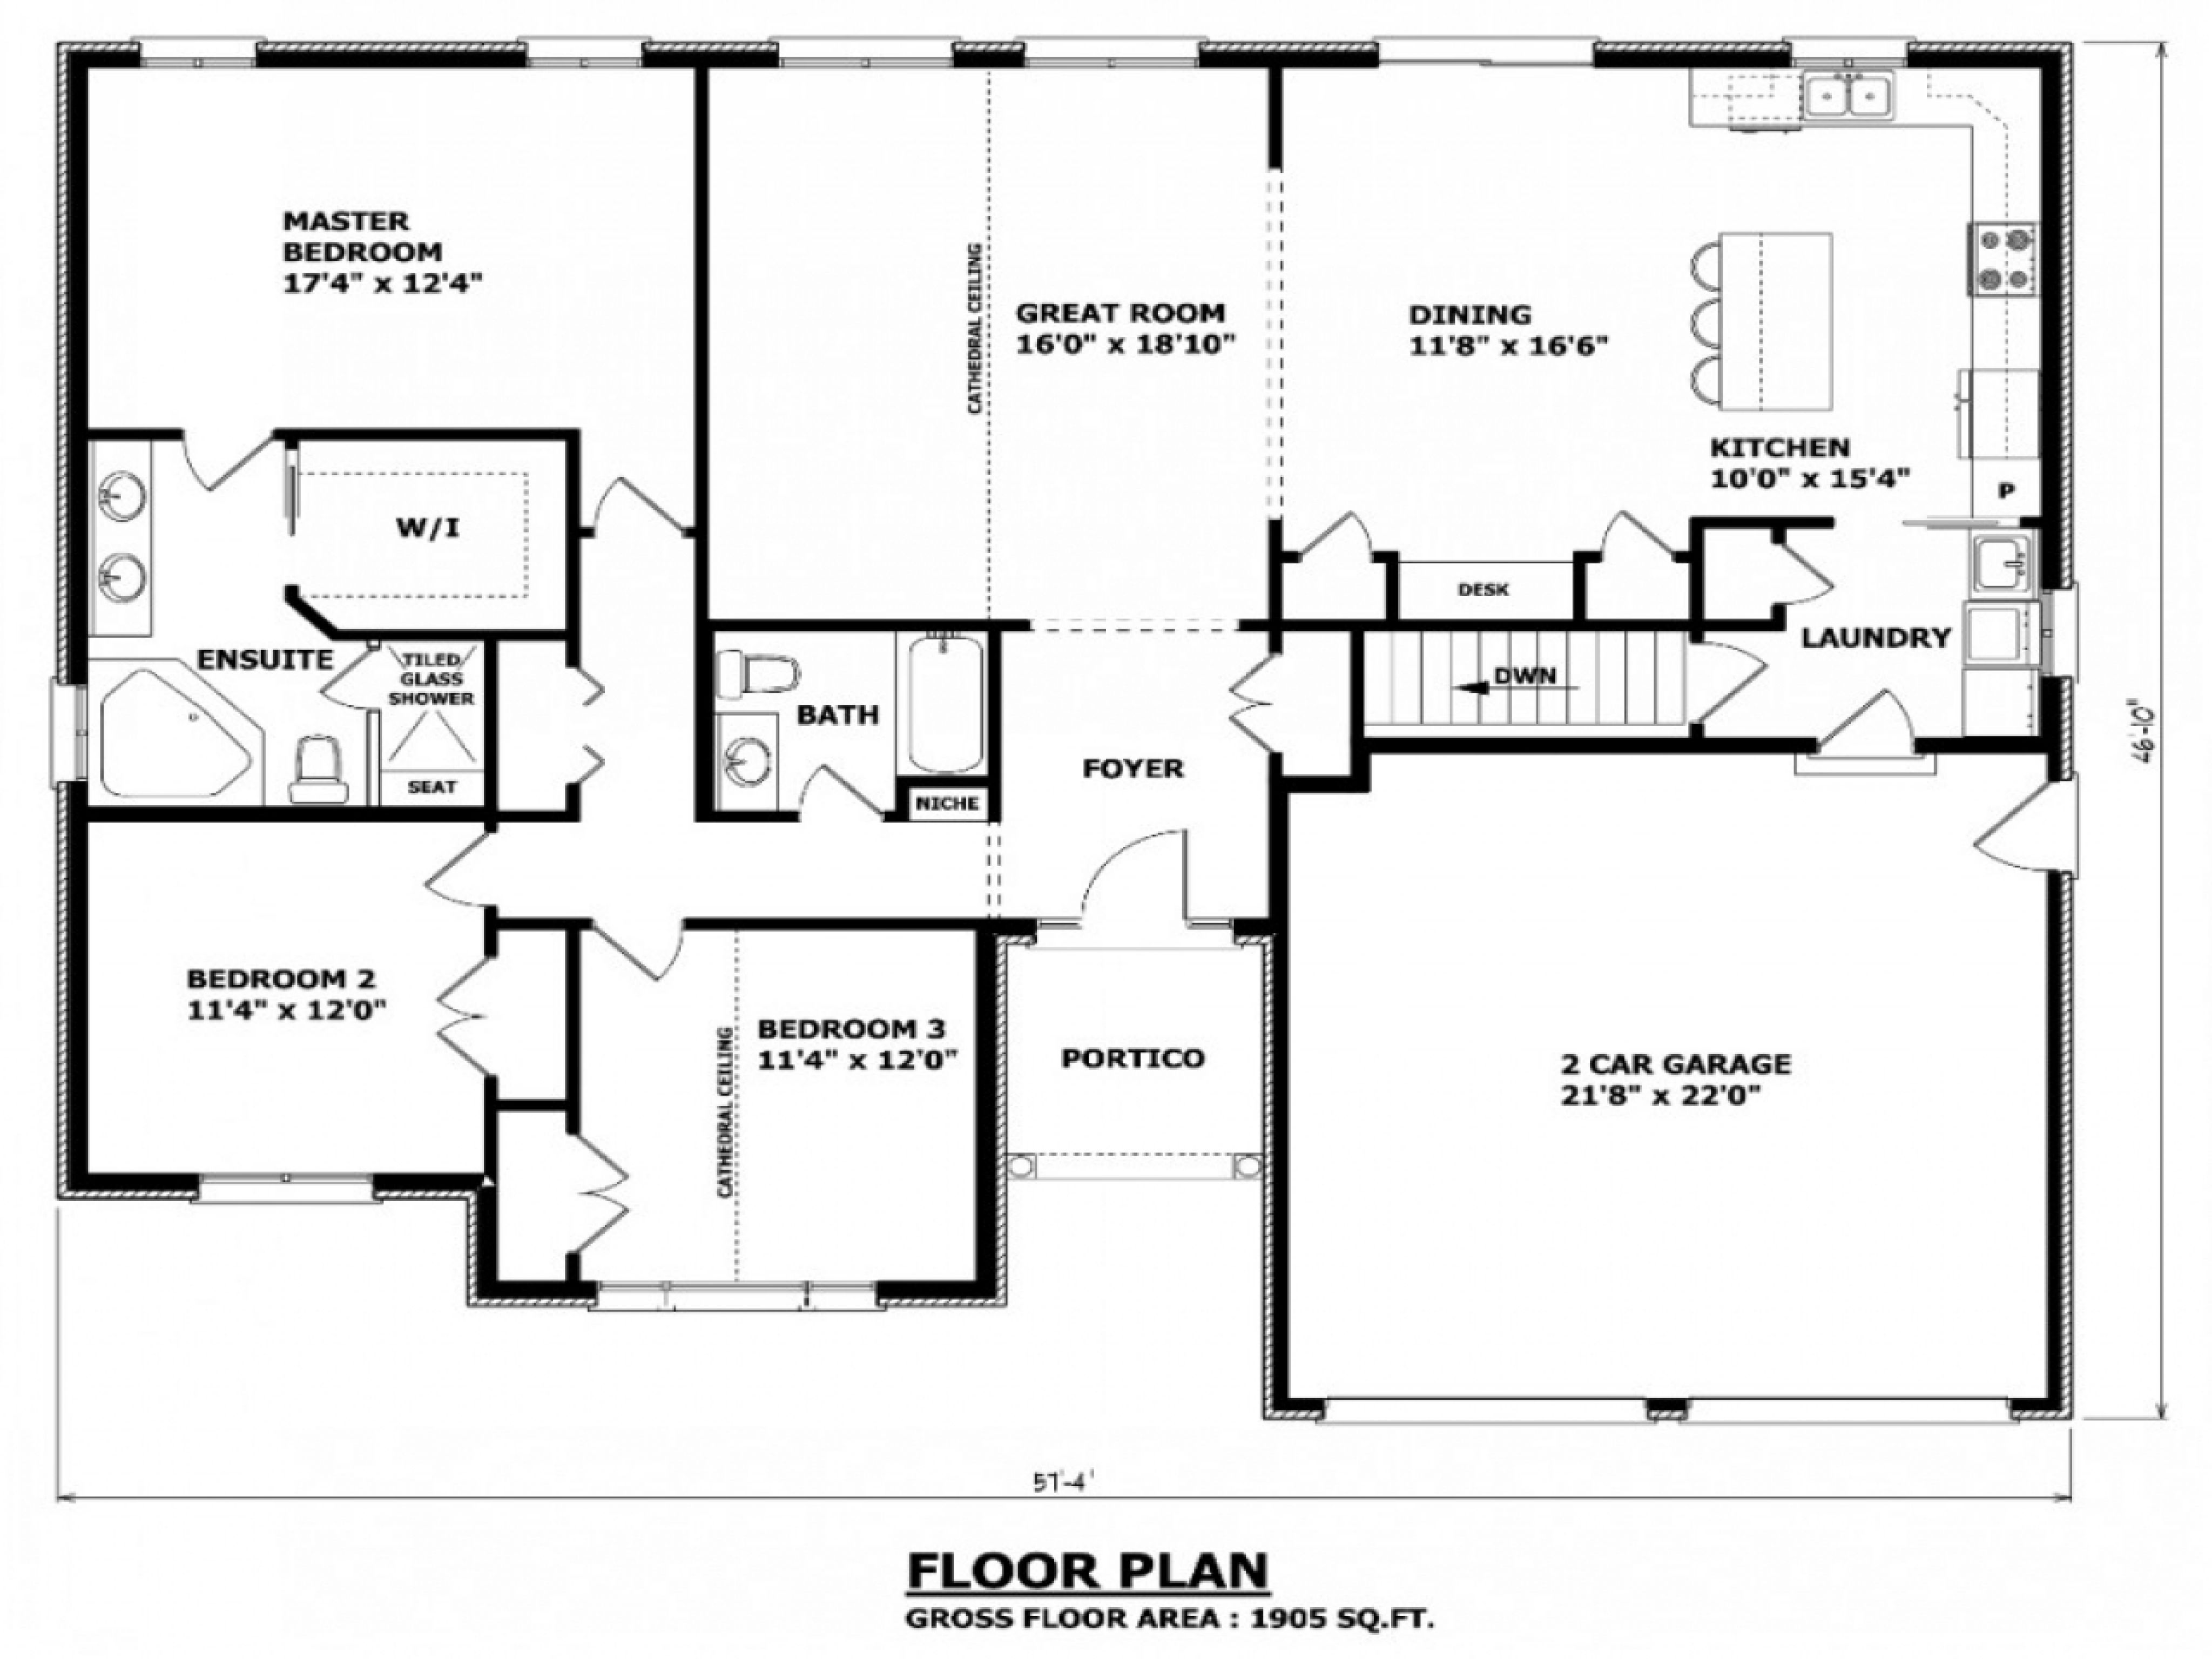 Top Cool Tips Interior Painting Sheen Interior Painting Colors Vintage Interior Painting Warm Offic 4 Bedroom House Plans Bungalow Floor Plans New House Plans